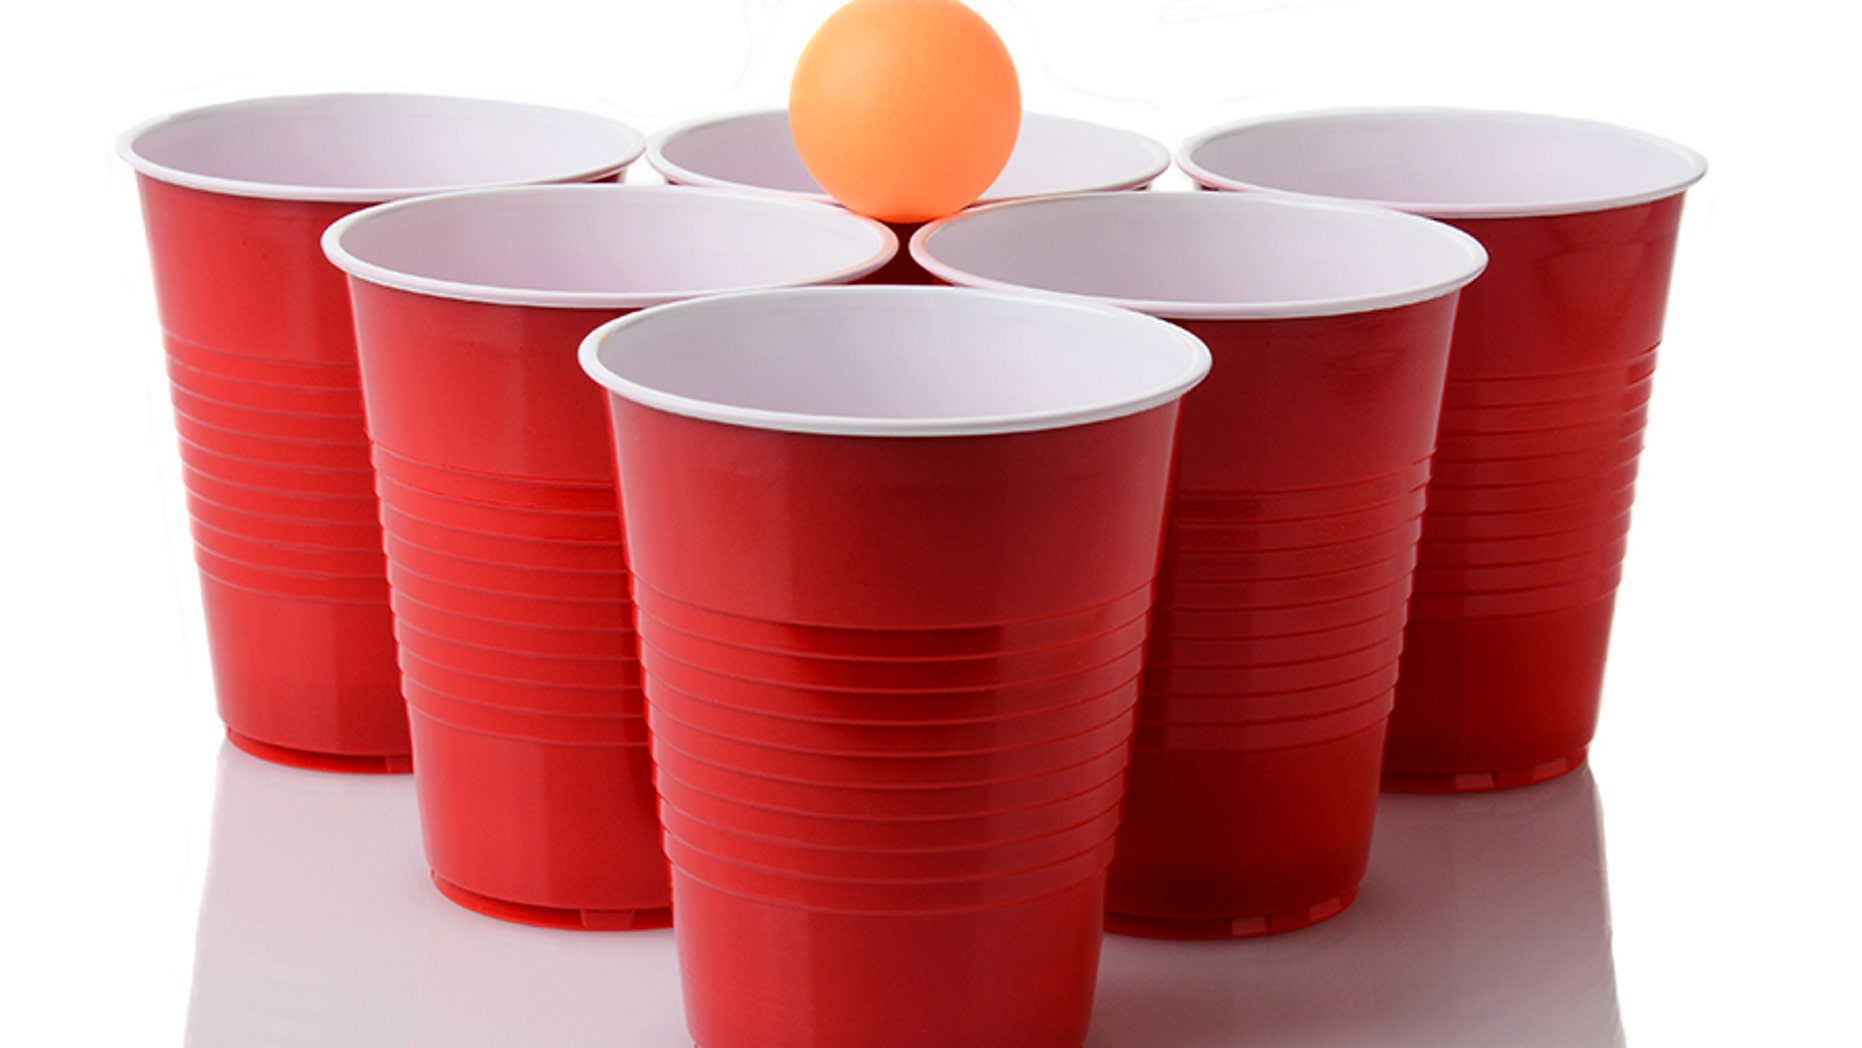 The family of a Connecticut man who died in 2013 after falling out of a window following a game of beer pong, like these people are playing here, was awarded $15.6 million.